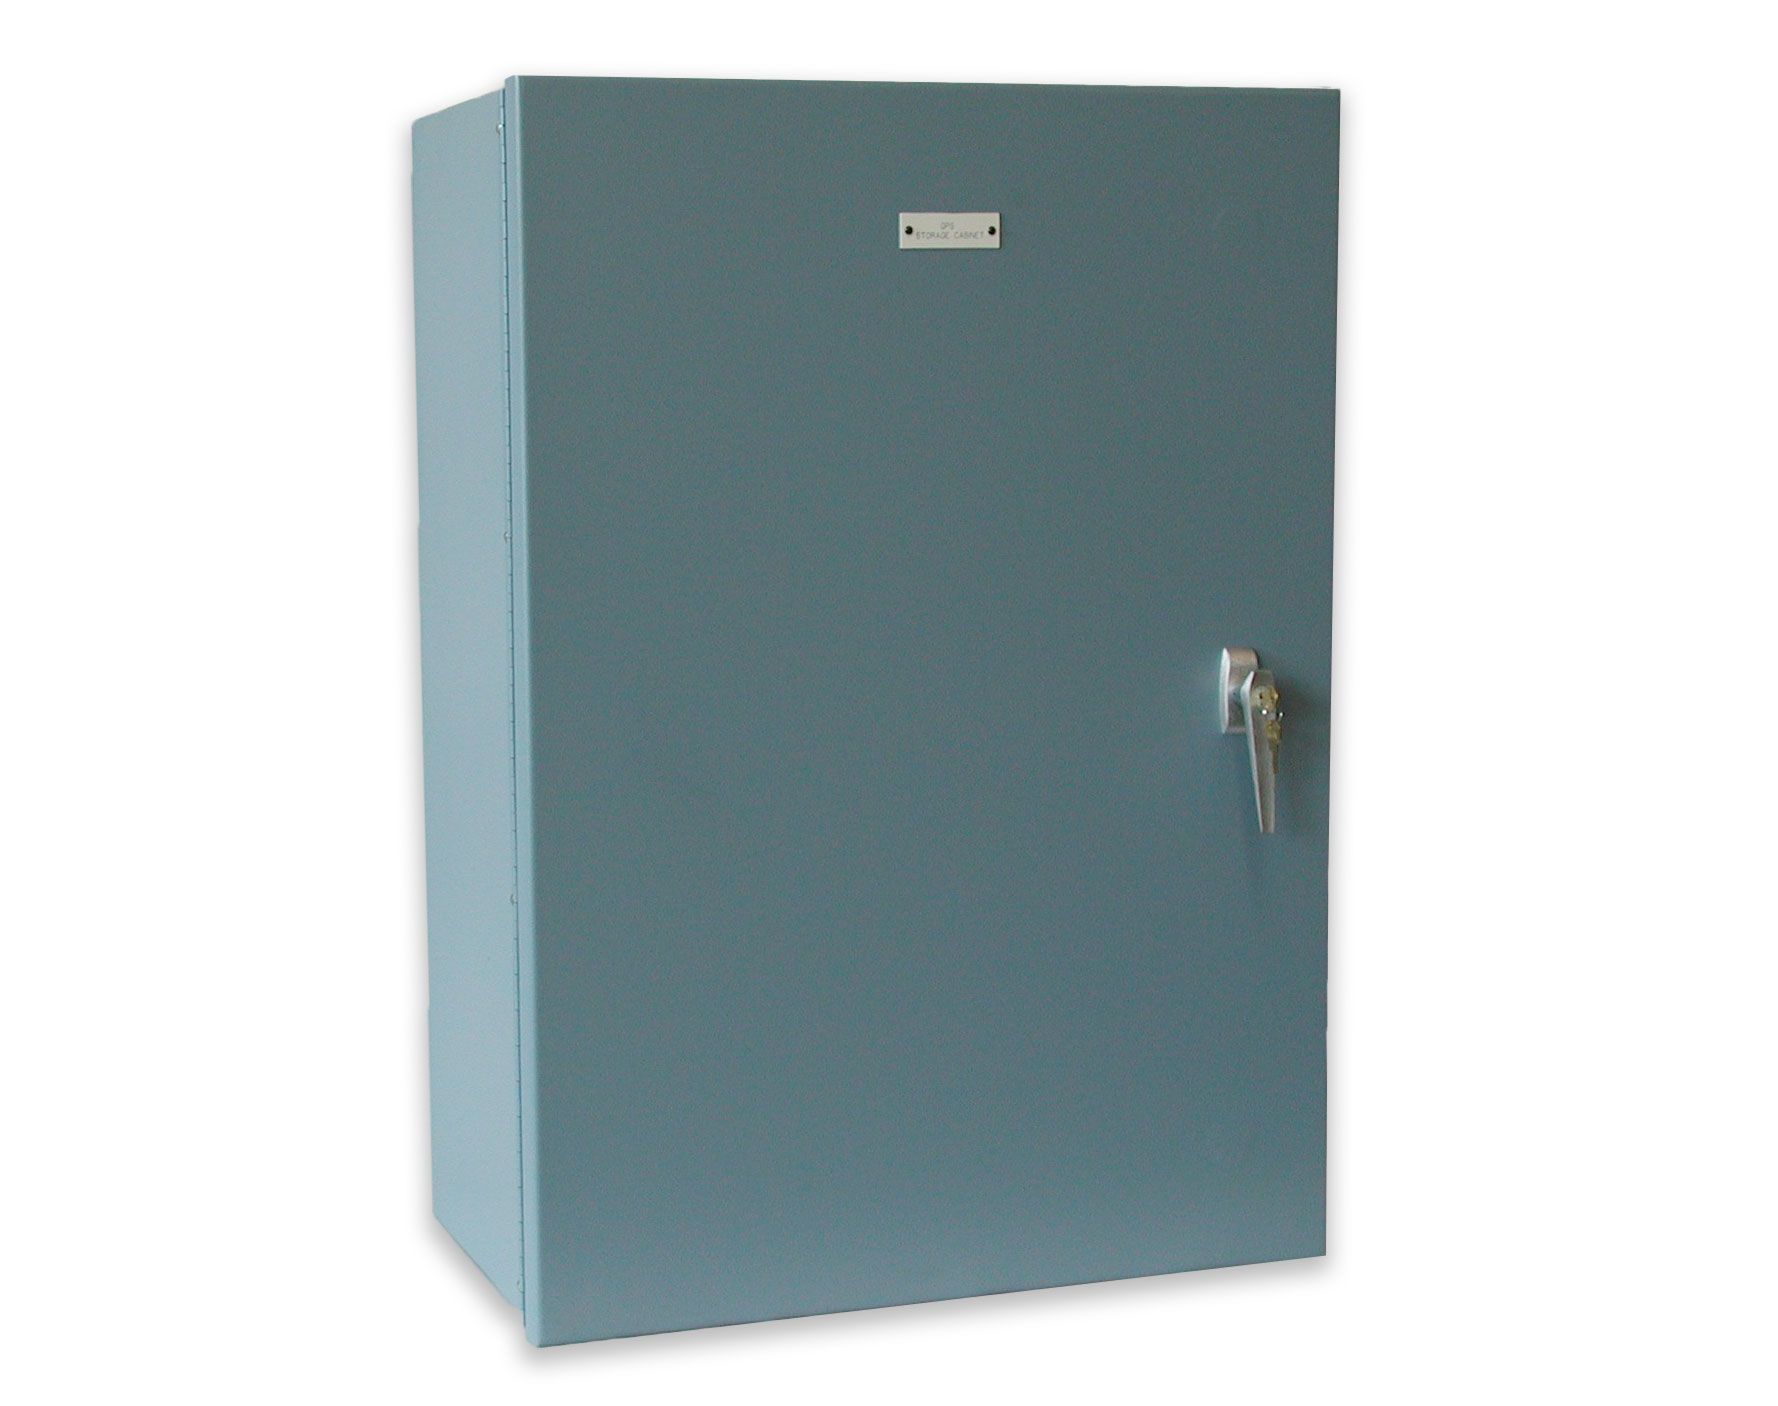 Gus Berthold Electric Co Wall Mounted Storage Cabinet